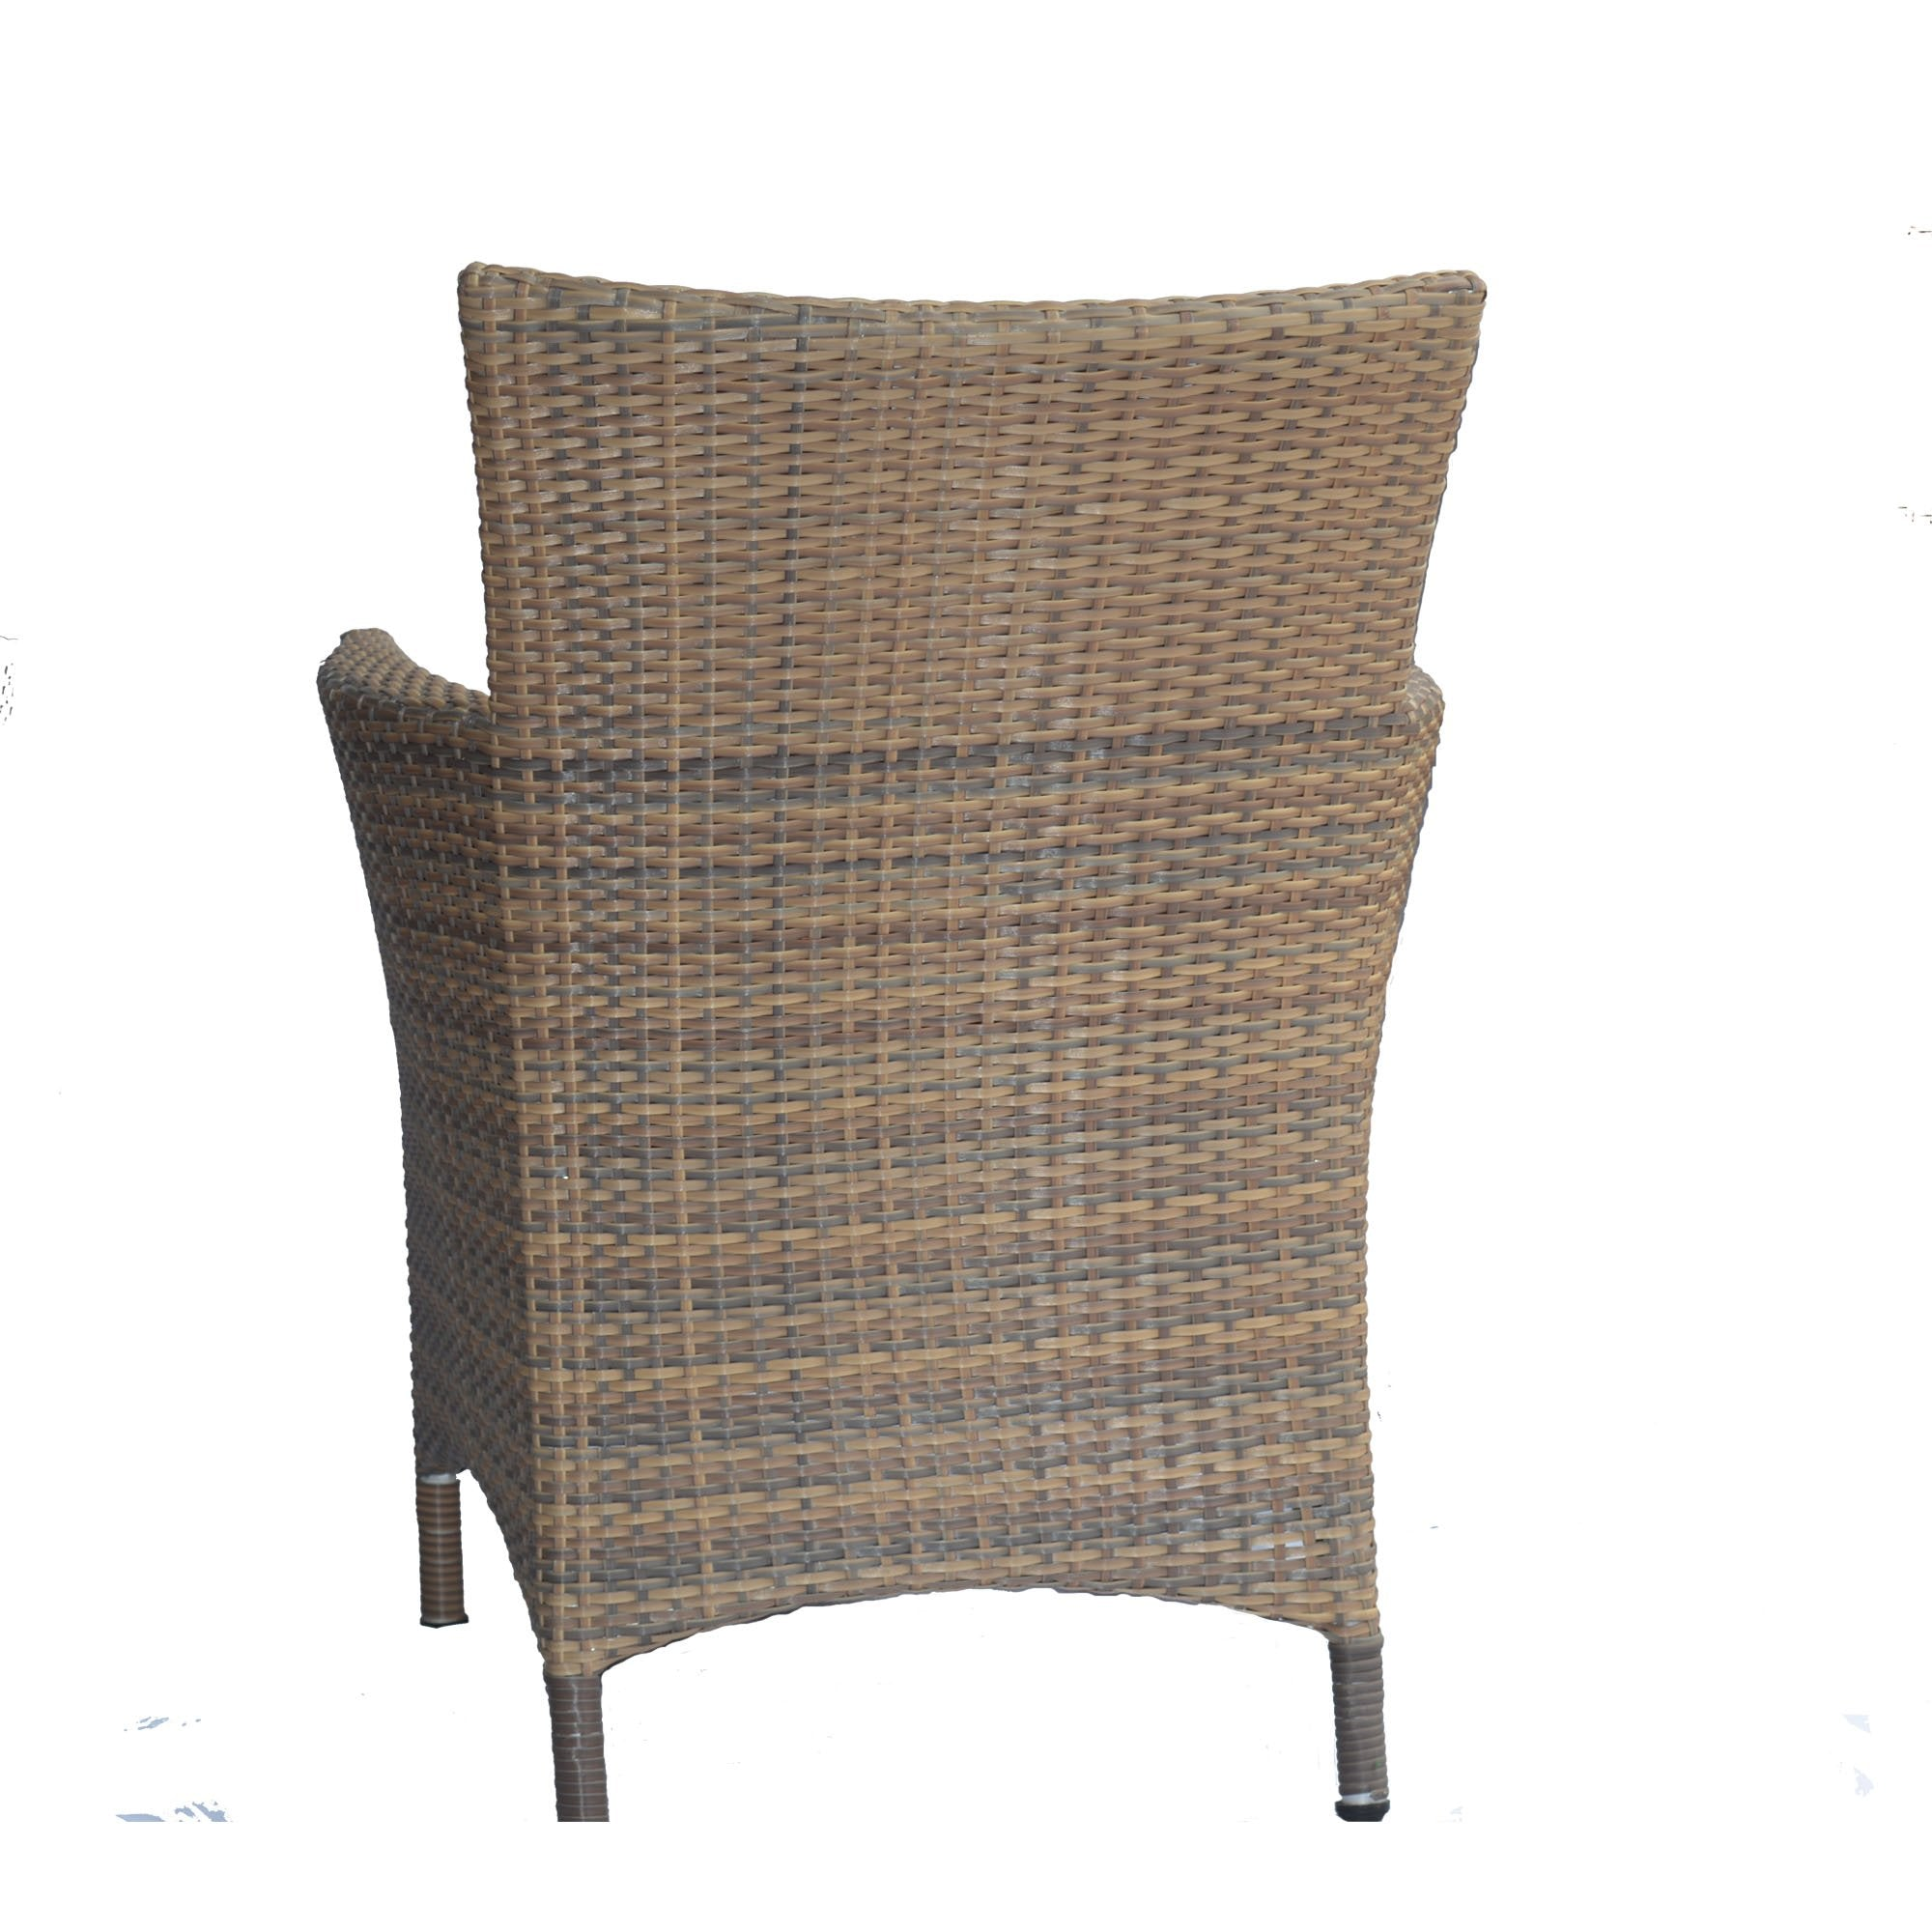 Multi-colored Natural Wicker Outdoor Furniture